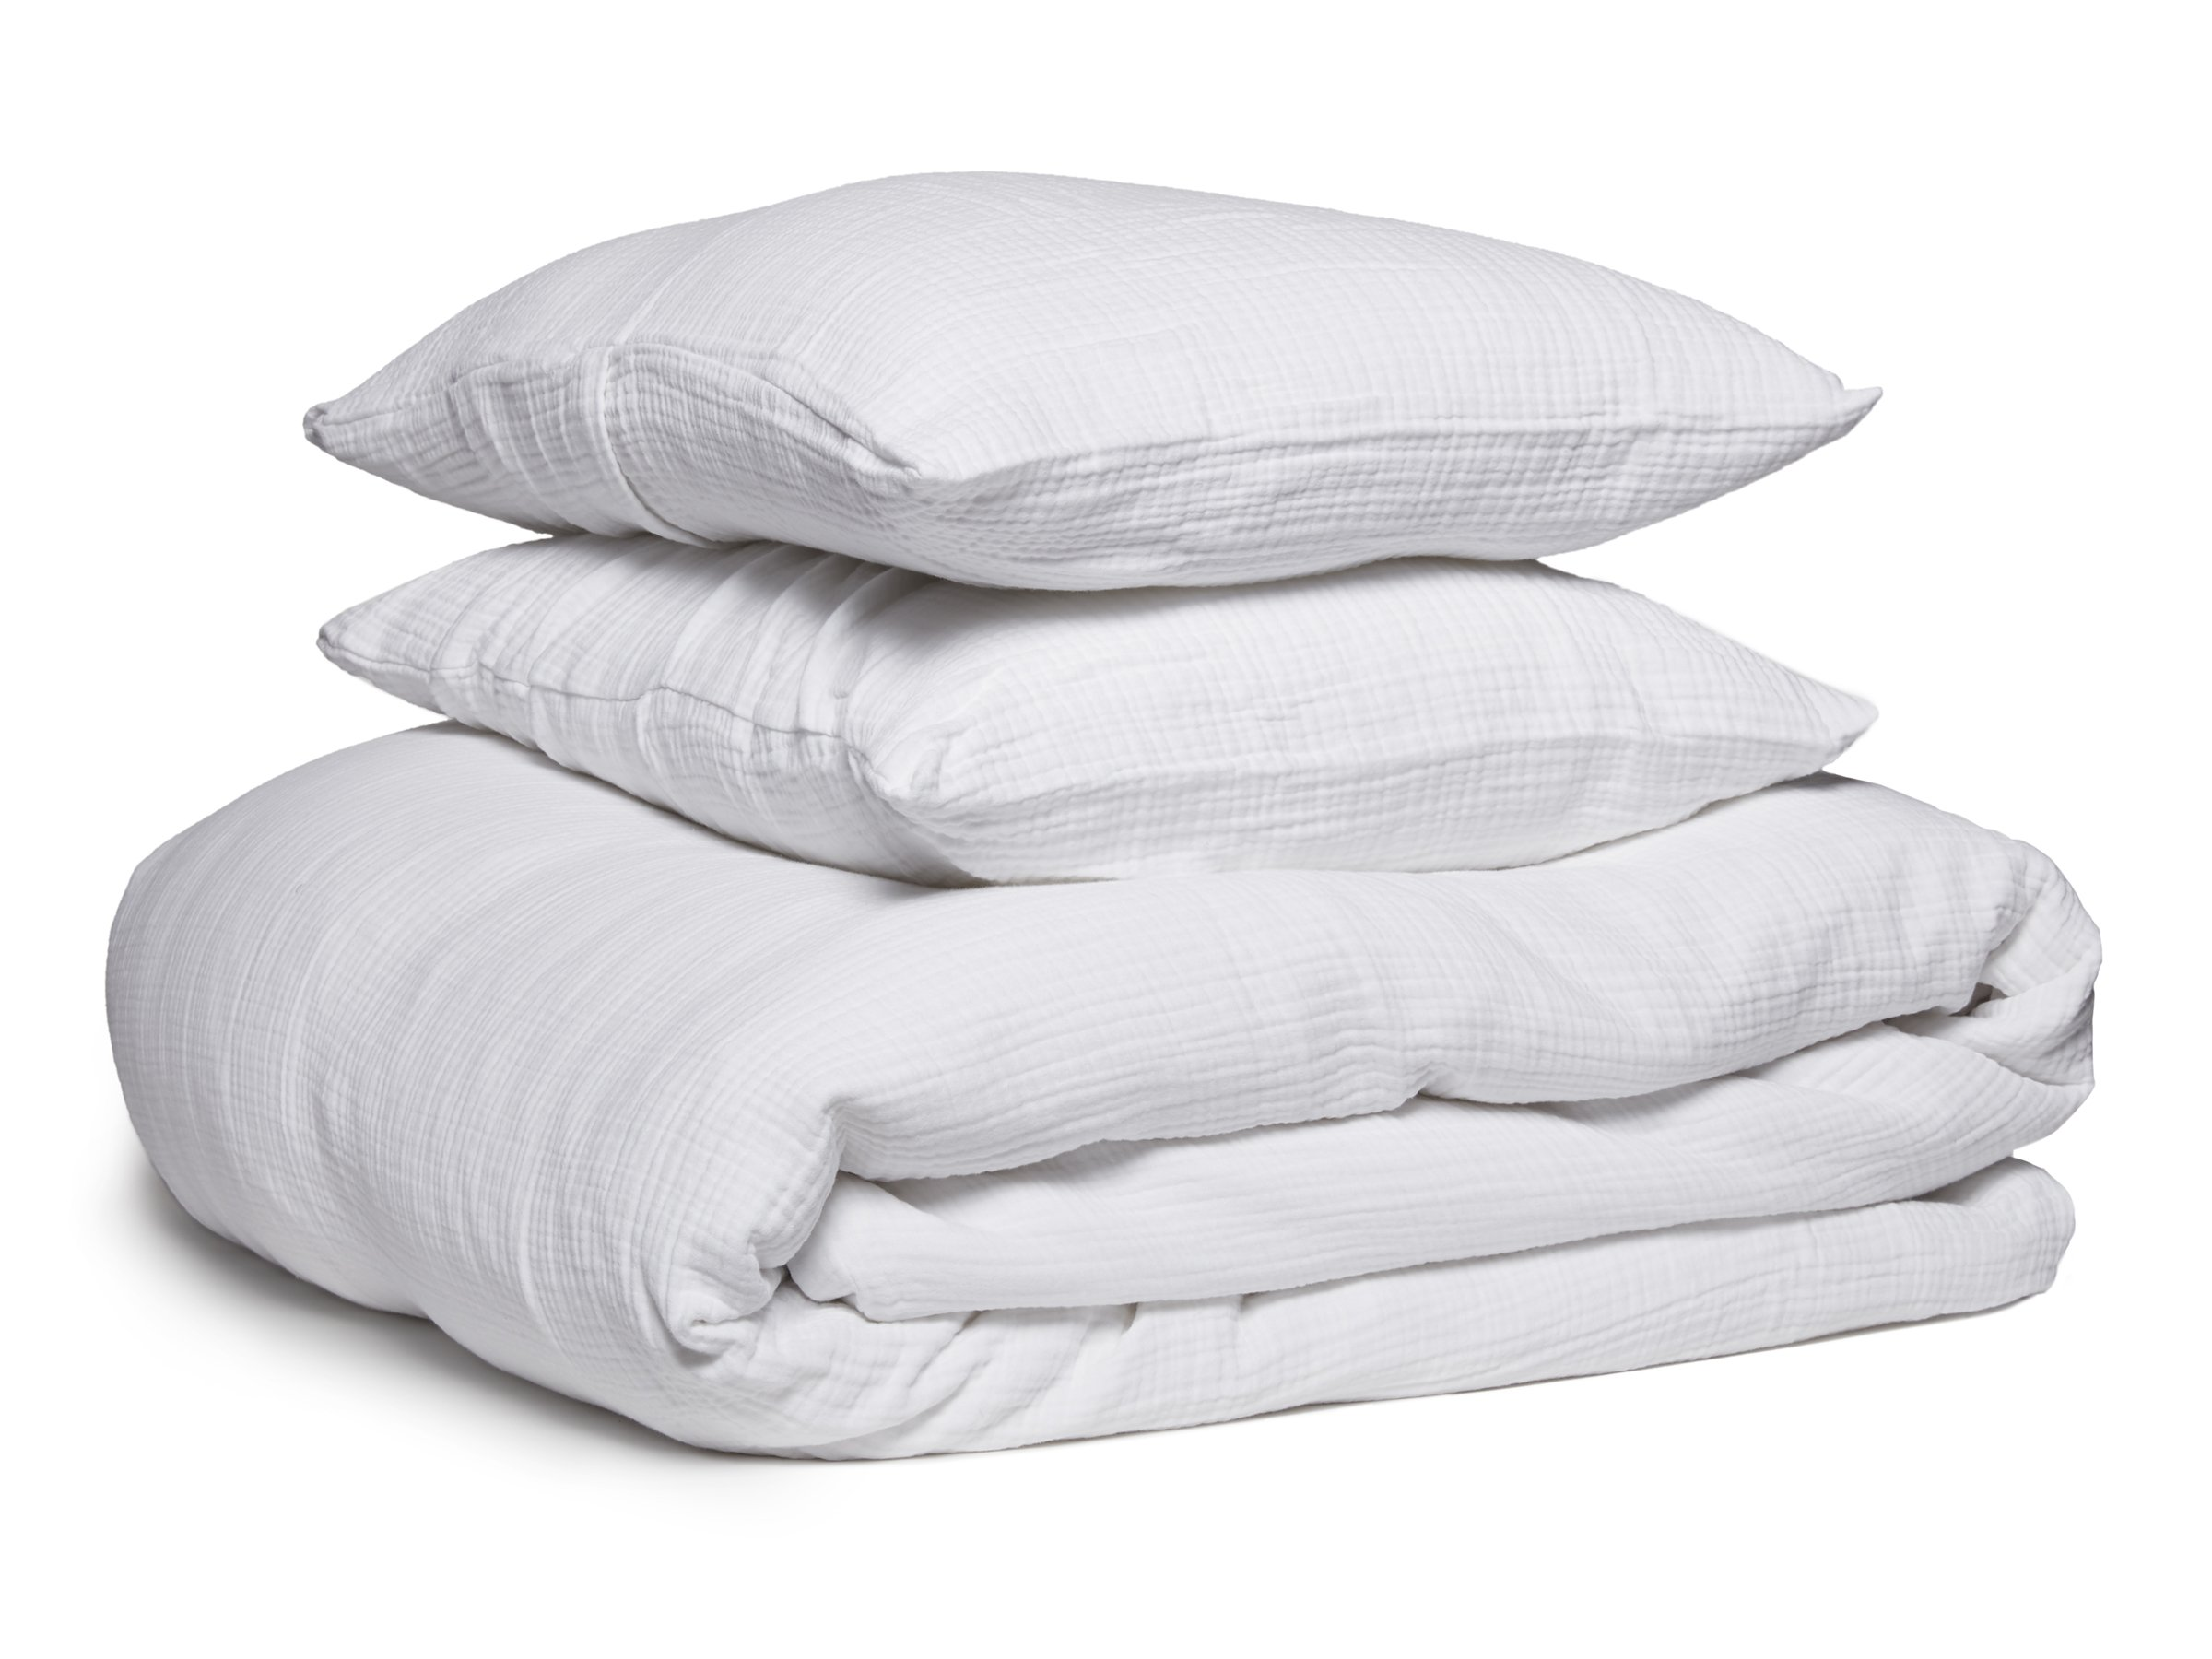 White comforter clipart picture black and white download Cloud Cotton Duvet Cover Set picture black and white download